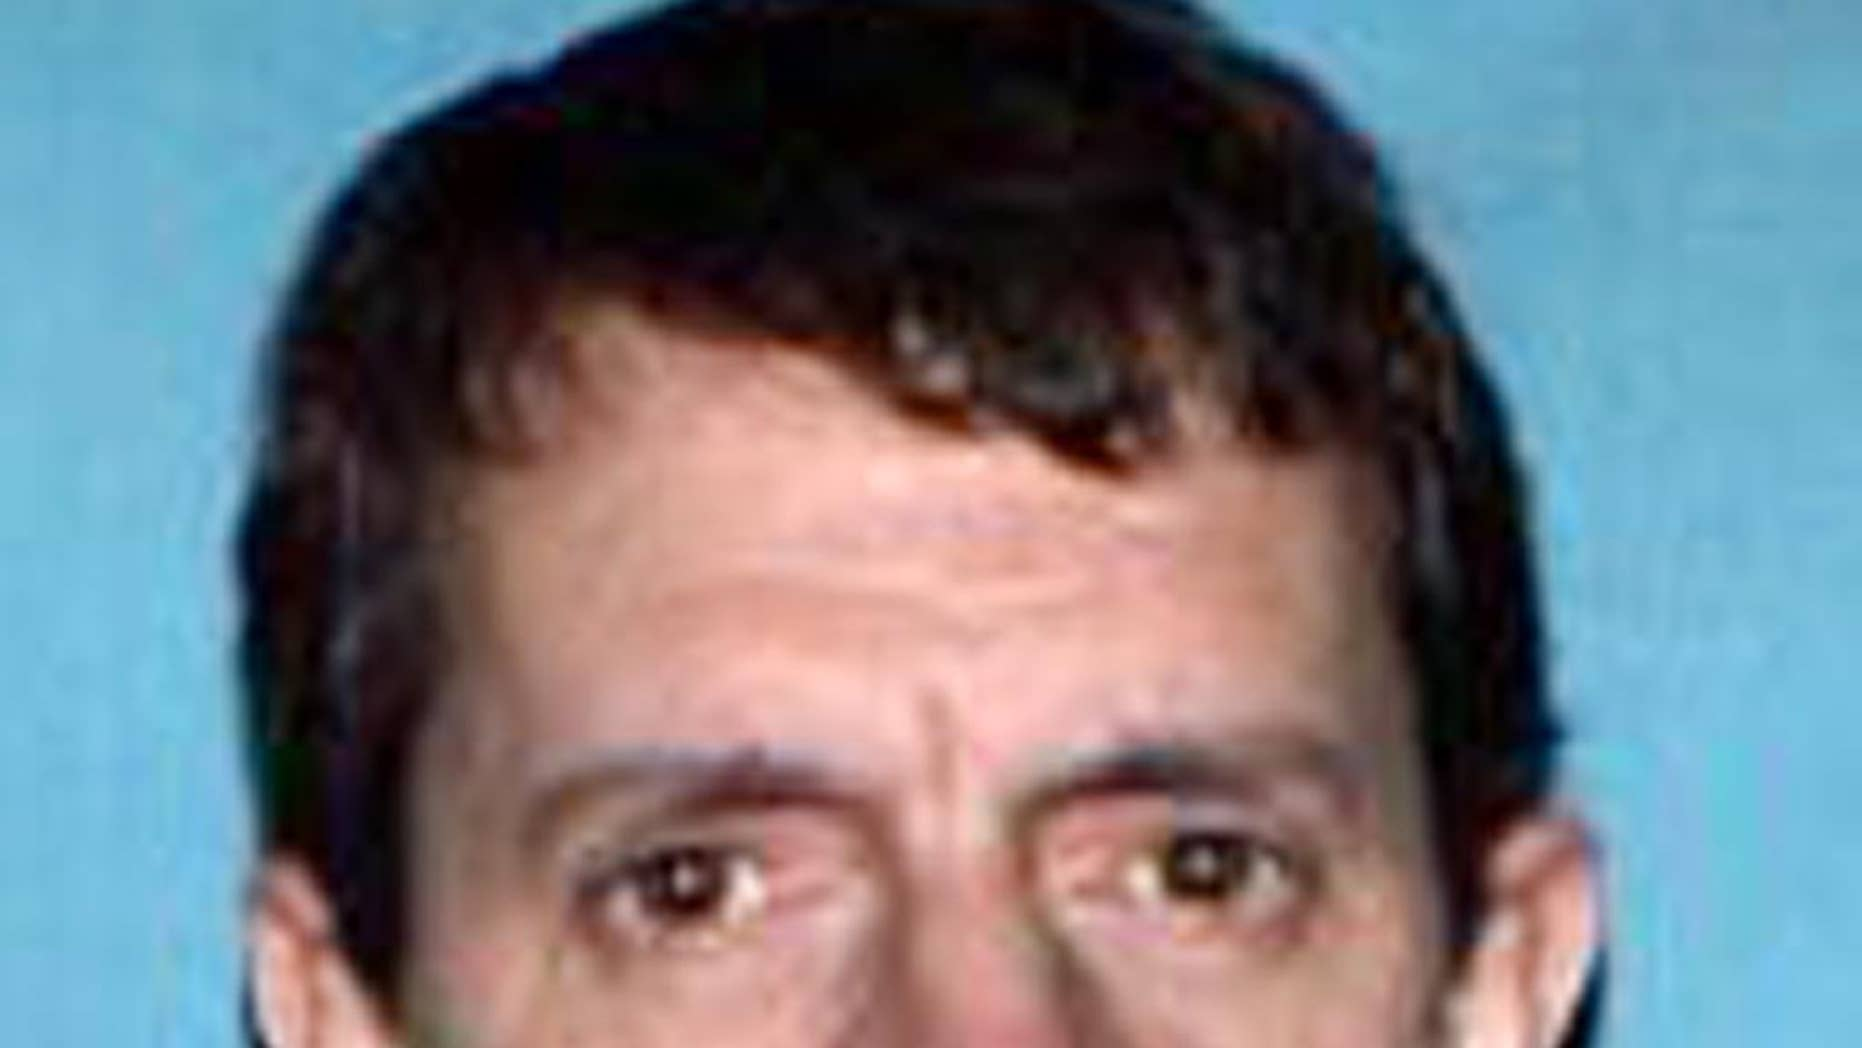 This photo provided by the Missouri State Highway Patrol shows James Barton Horn Jr., 47, of Sedalia, Mo. A Missouri woman told police she fled from a home she shared with Horn who'd been holding her captive since January, sometimes confined in a wooden box, authorities said Friday, May 1, 2015. Police and federal authorities are searching for Horn and expect he will face charges, possibly including felonious restraint, sexual assault and assault. (Missouri State Highway Patrol via AP)